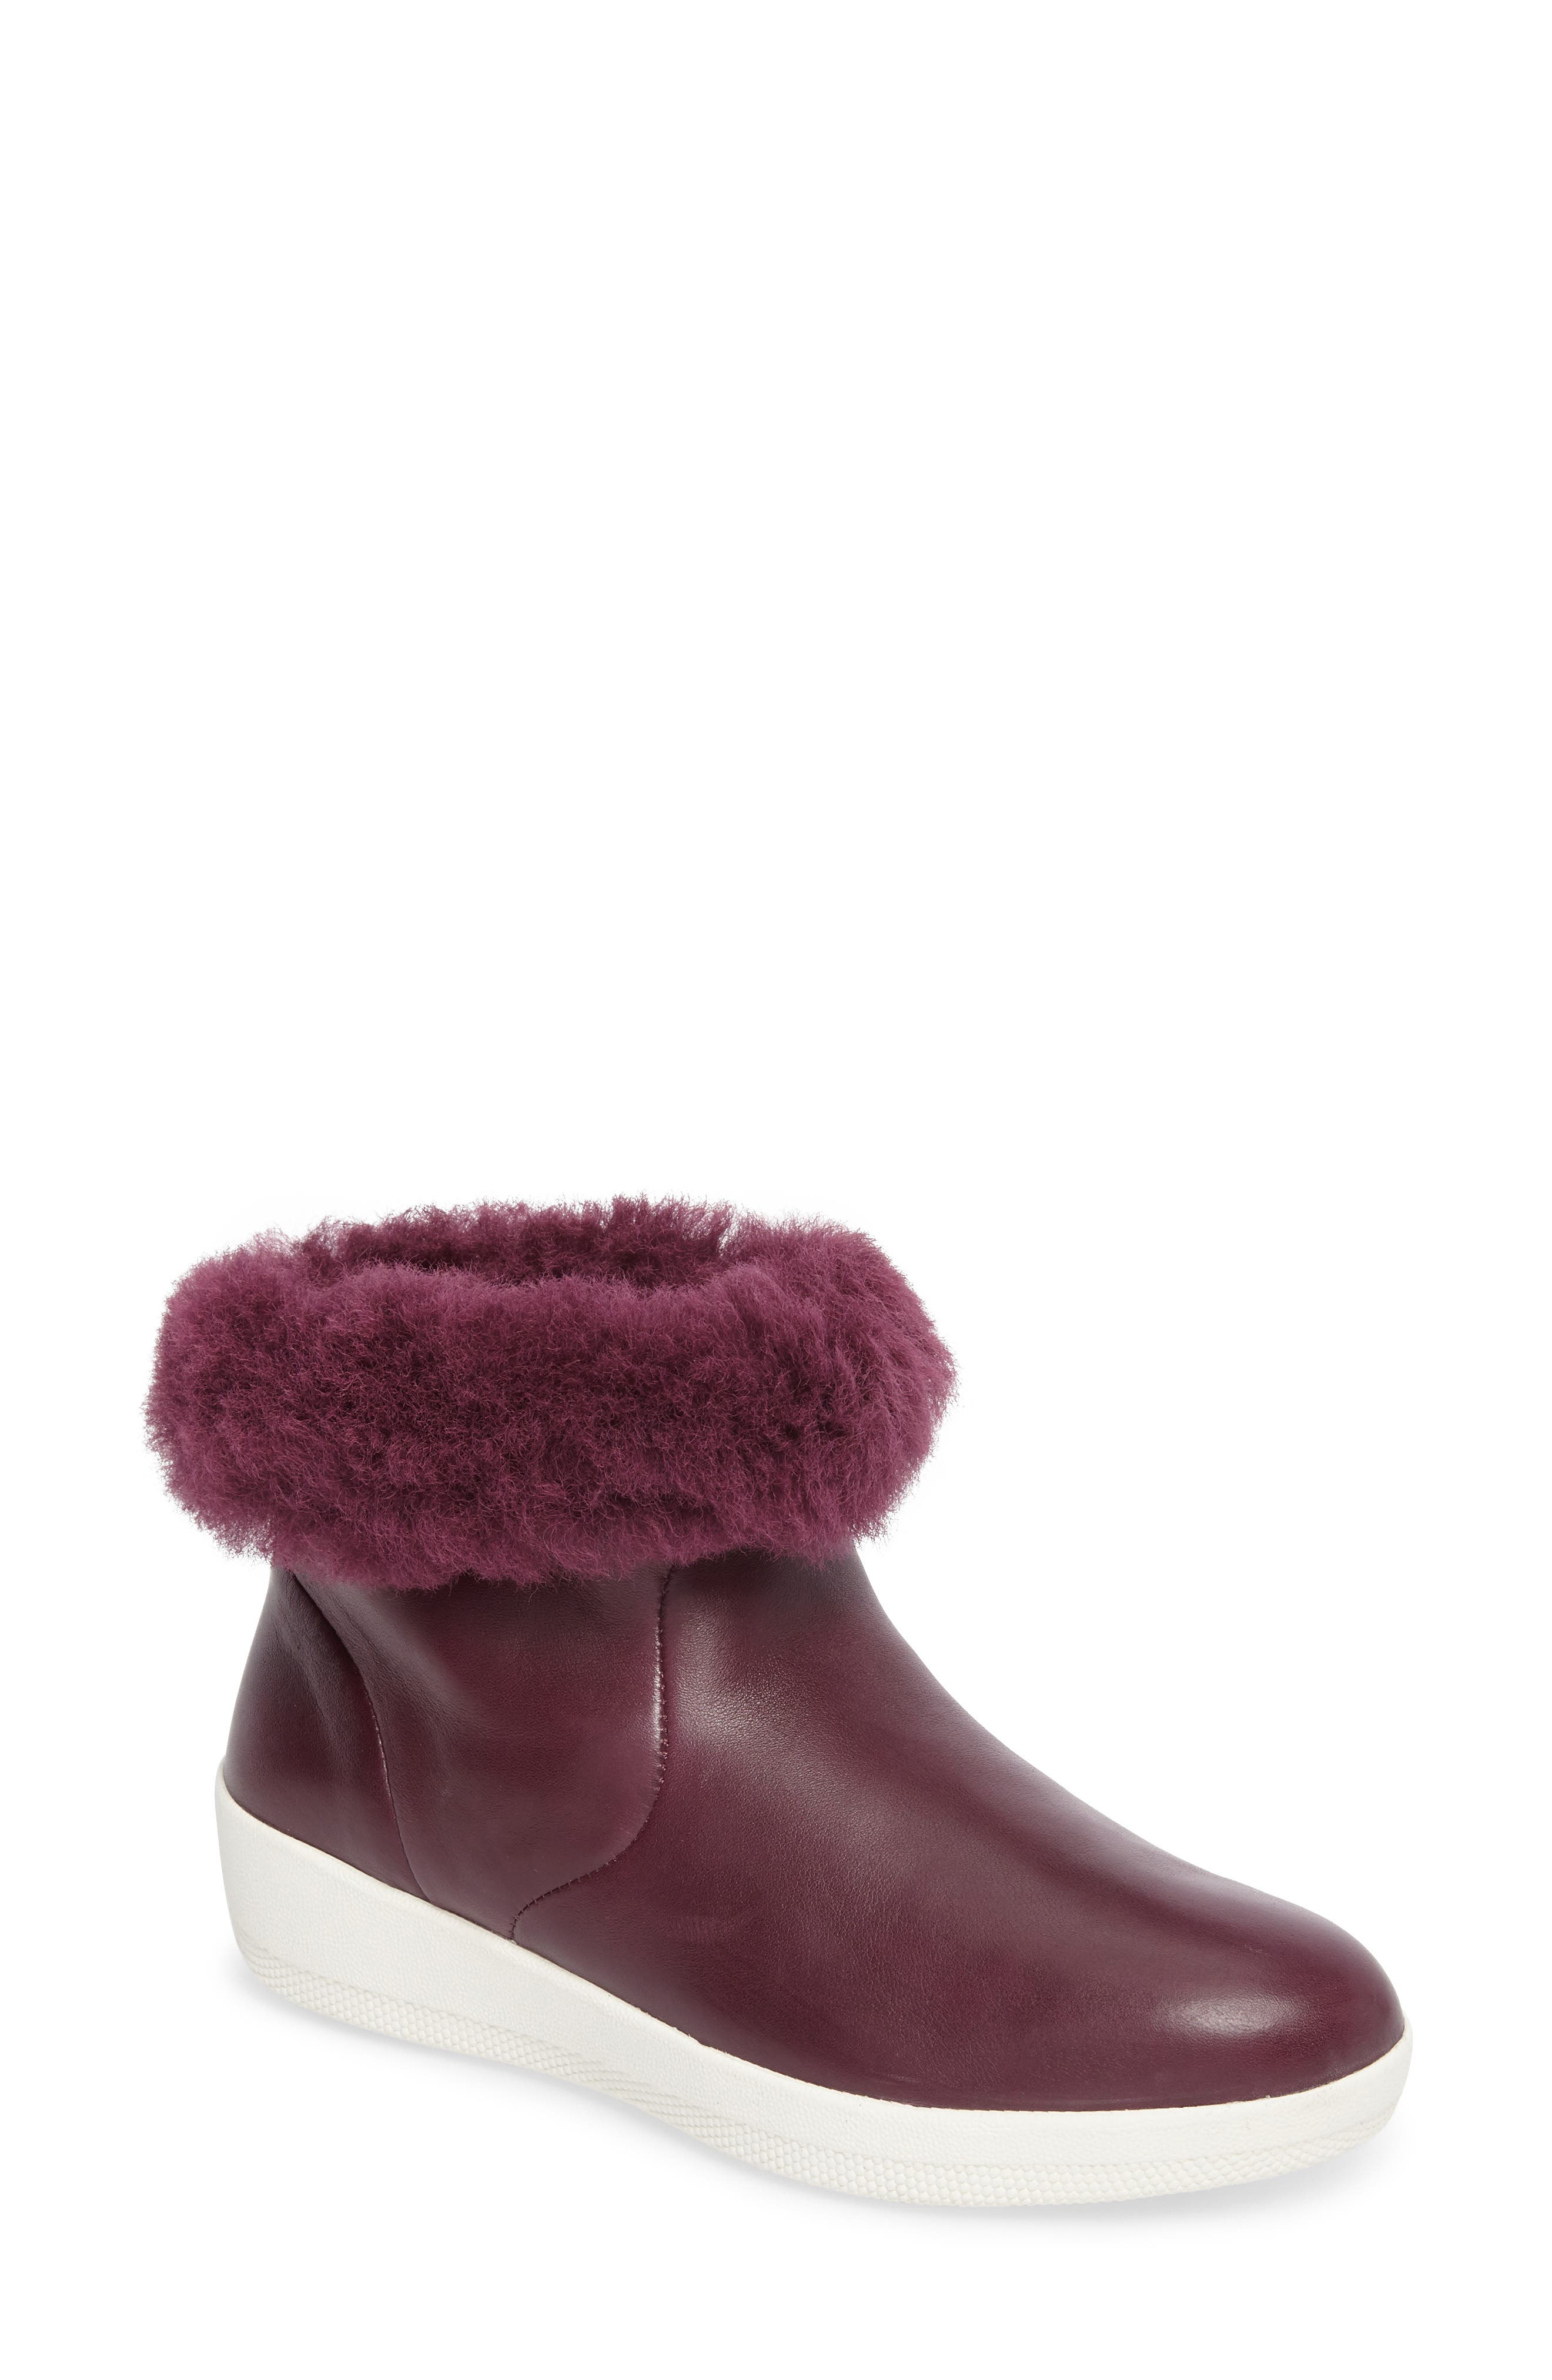 Skatebootie<sup>™</sup> with Genuine Shearling Cuff,                         Main,                         color, Deep Plum